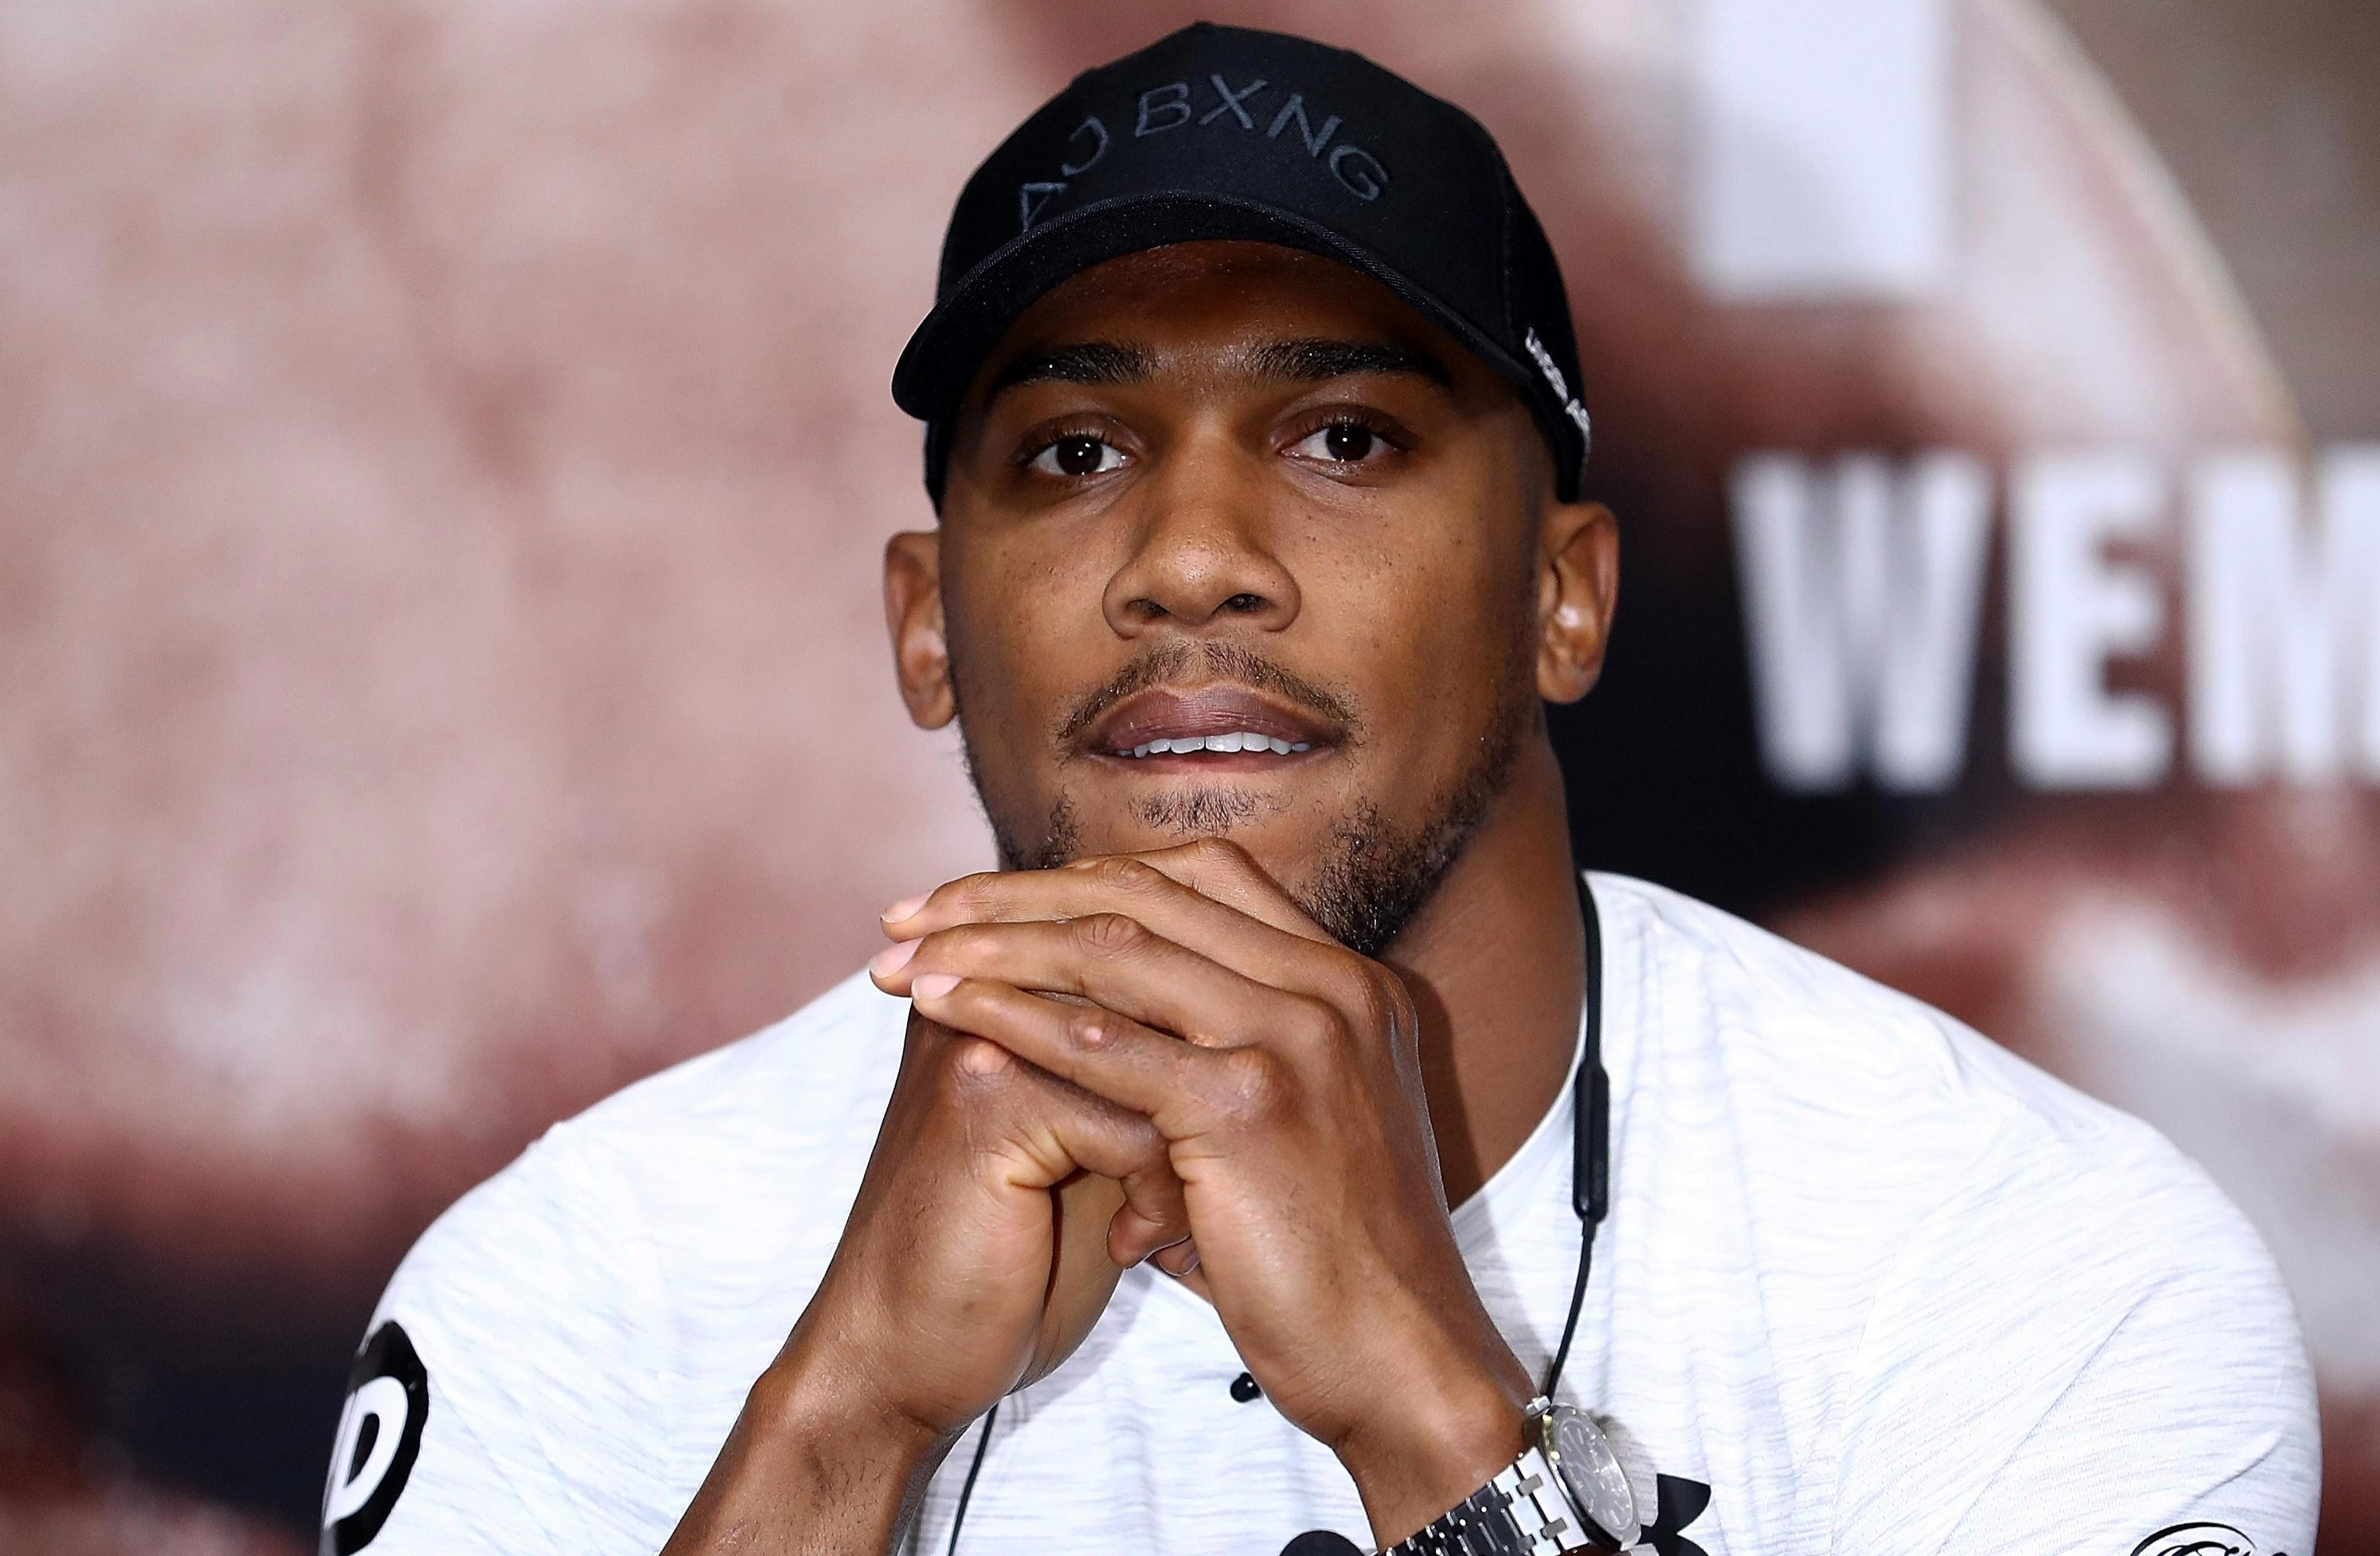 AJ has his eyes on Wilder even if he loses to his British rival Fury